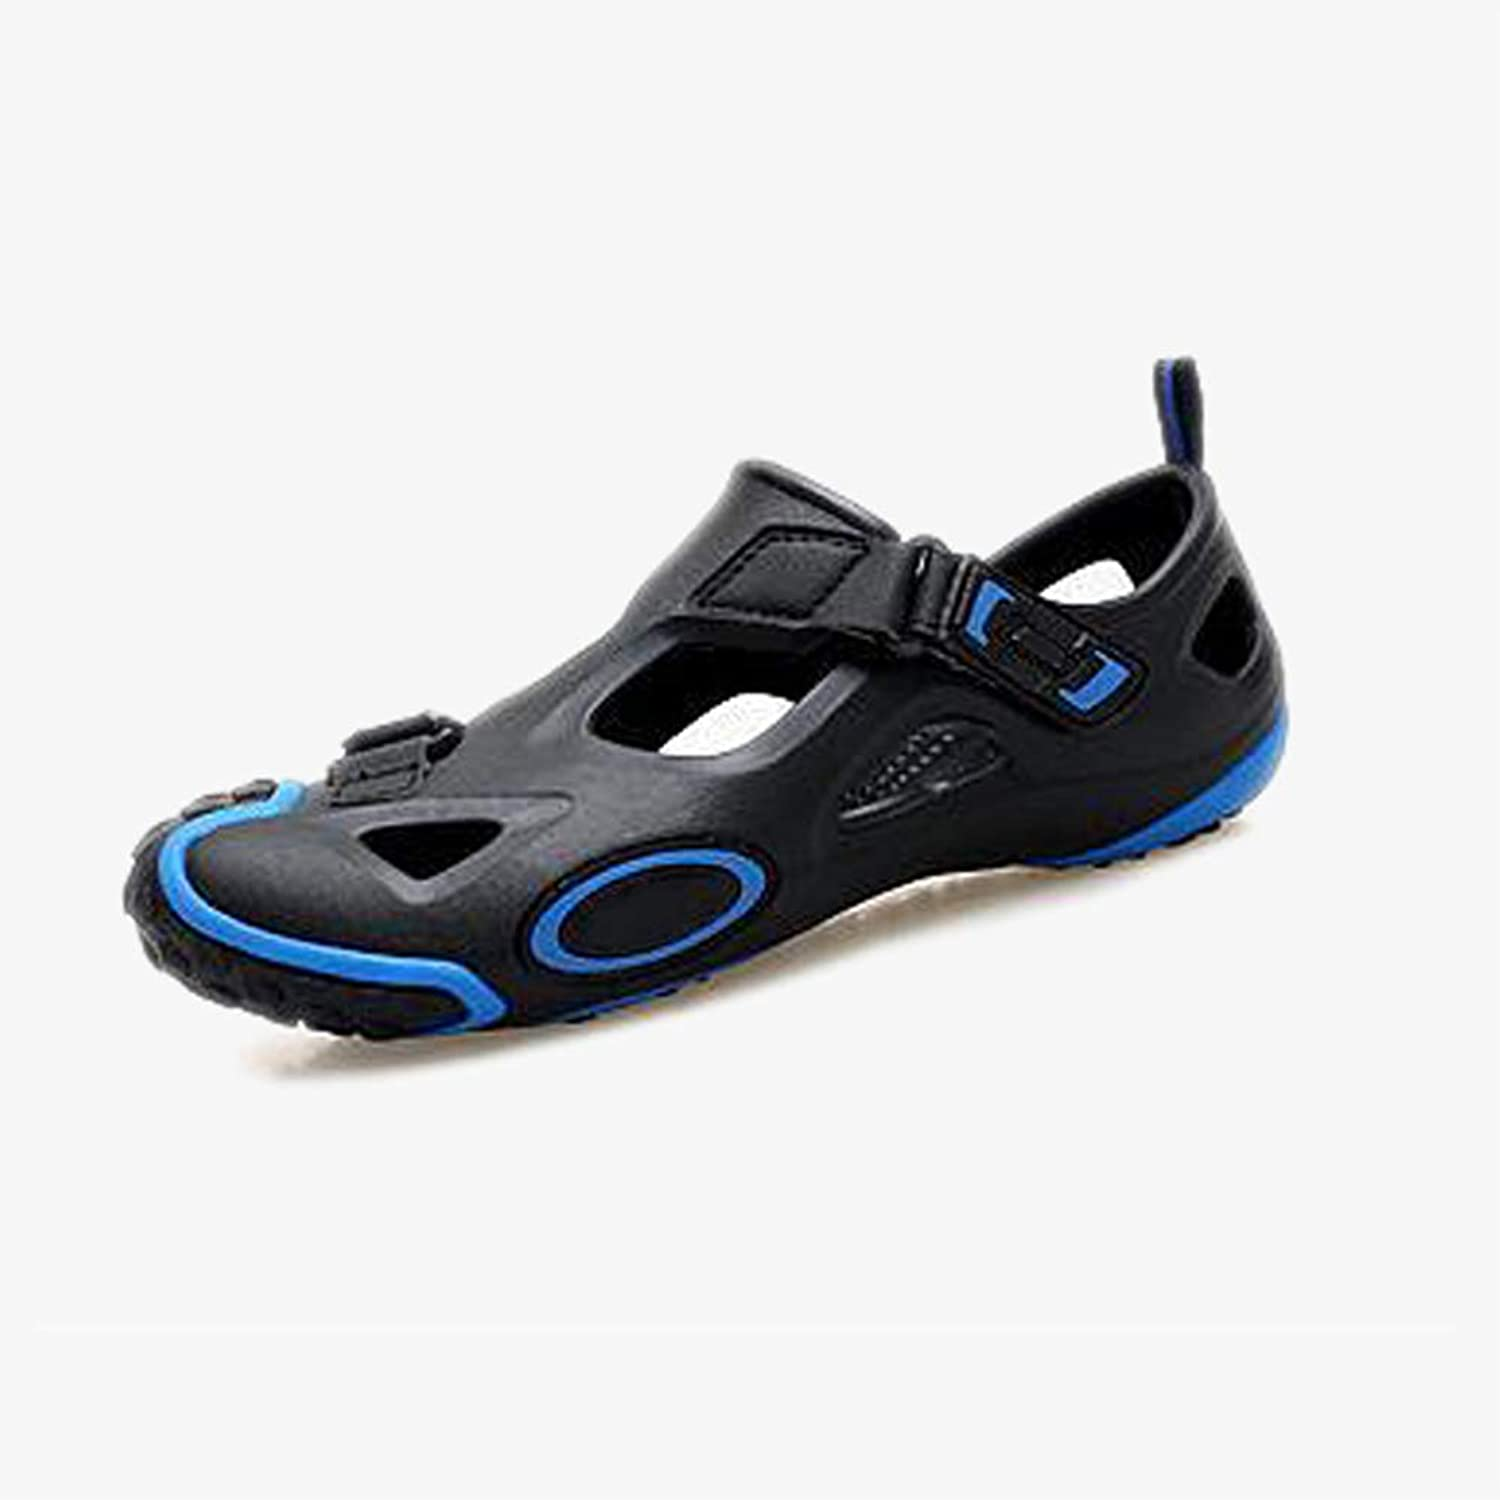 Couple Beach sandals shoes Outdoor Sports Sandals for Summer Black bluee Rubber Non Slip Splice